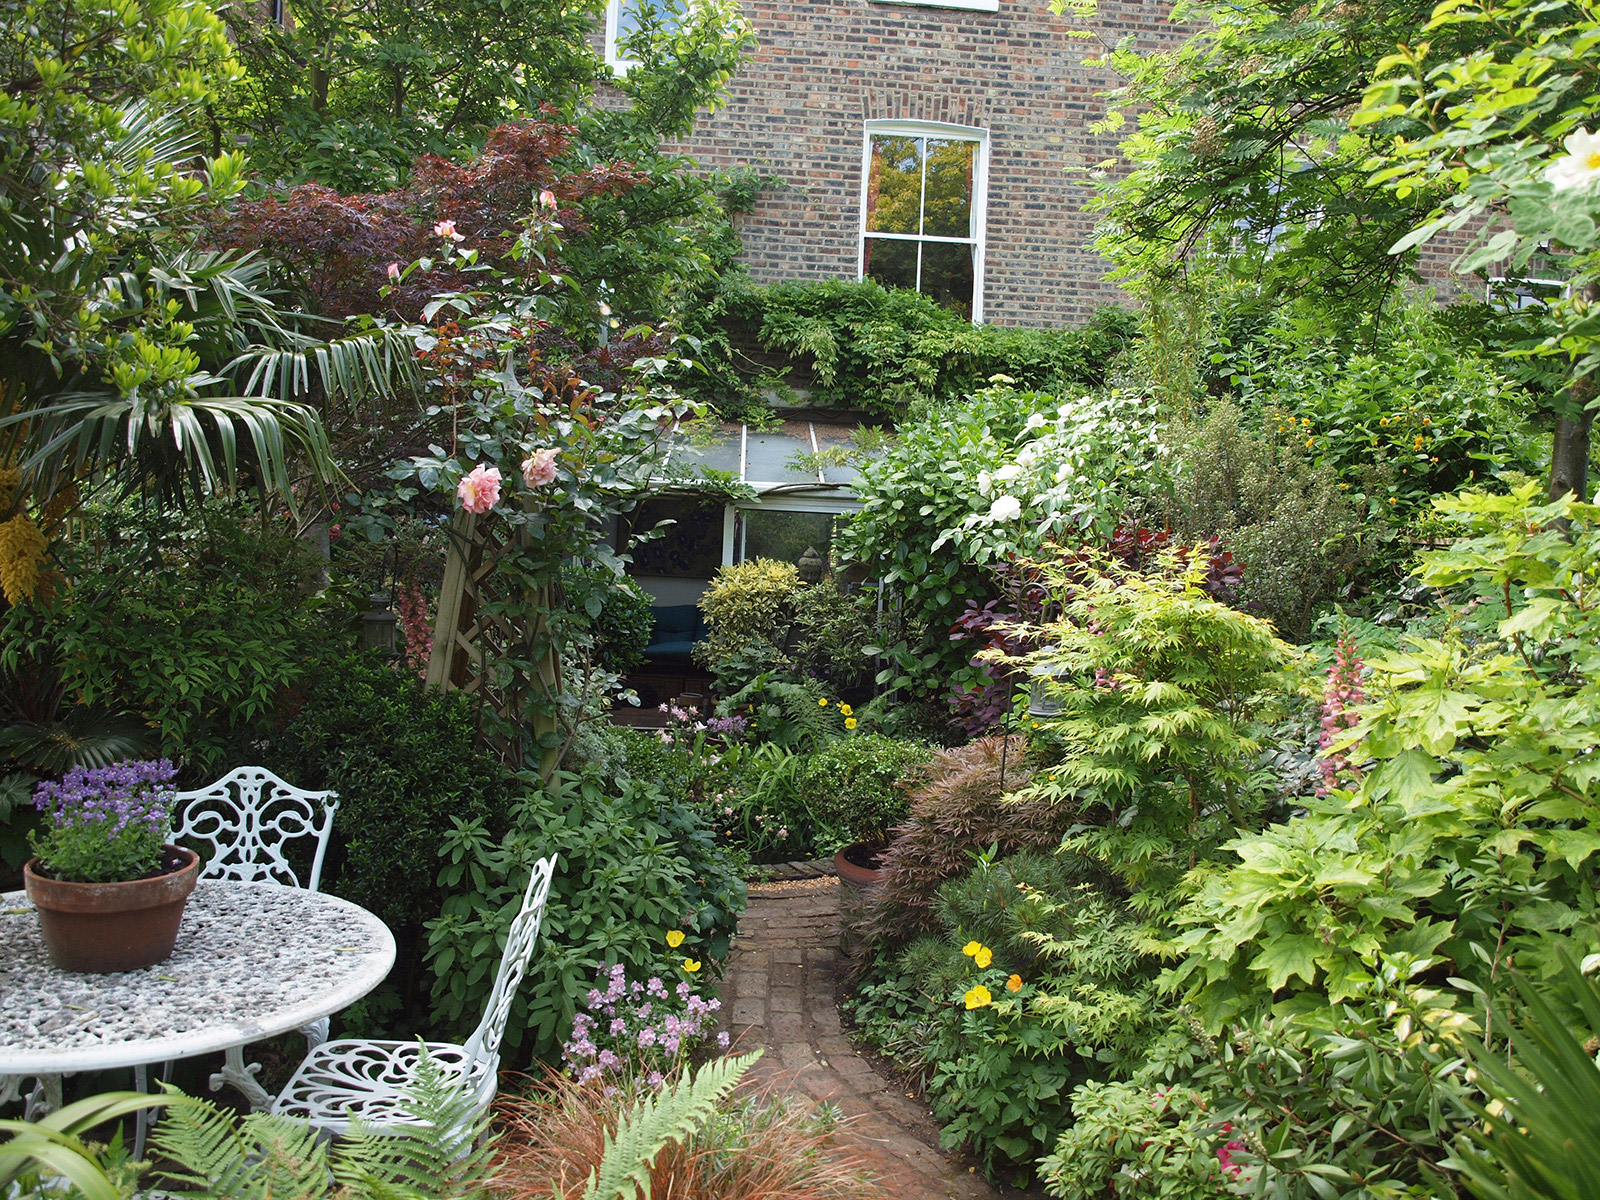 This garden provides several different sitting areas and views and offers a high level of privacy.